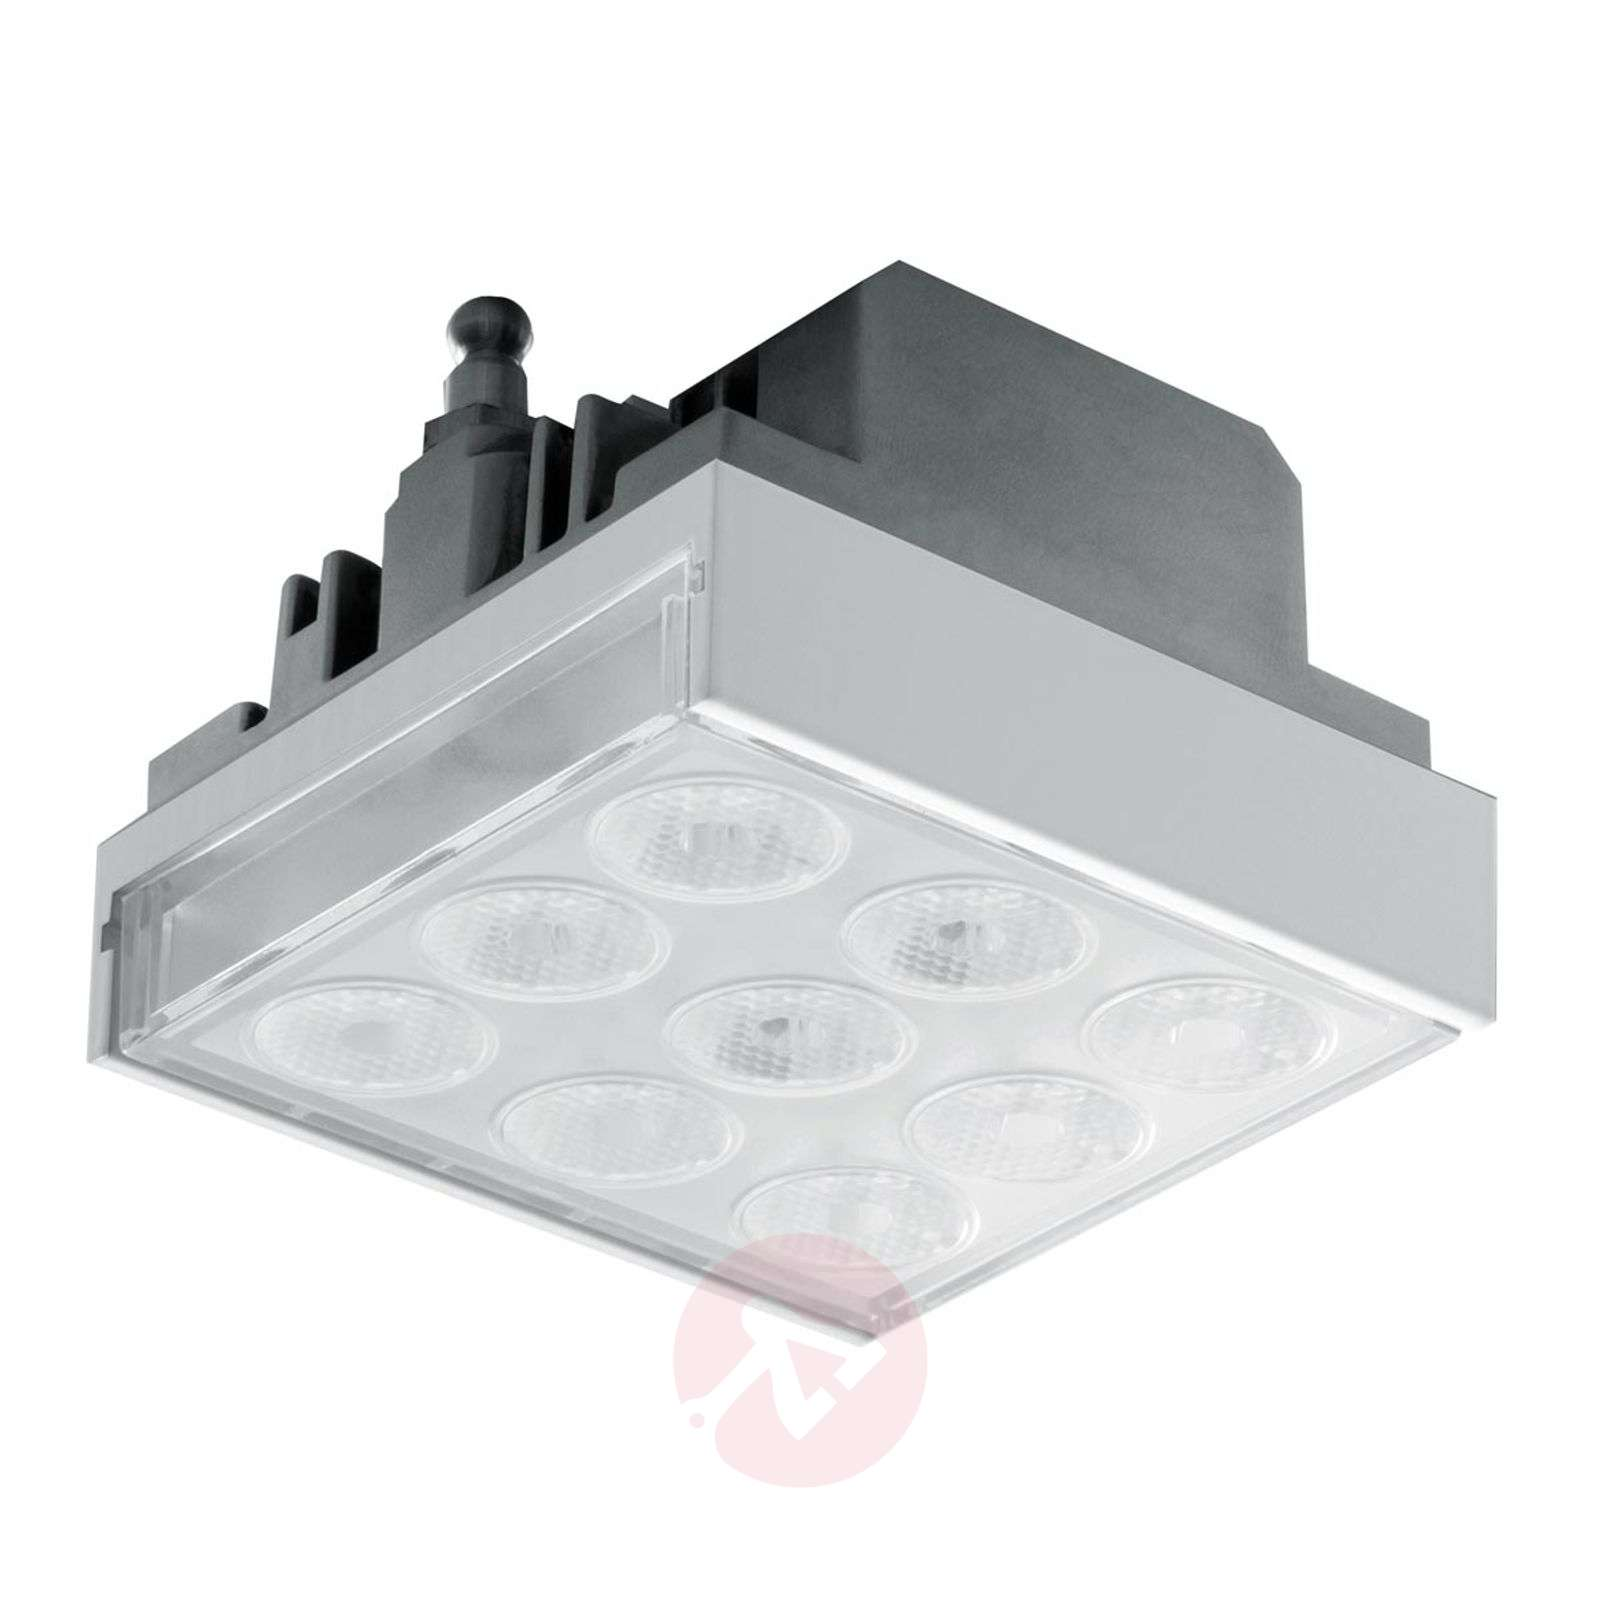 LED ceiling PAD80 with adjustable lense-1061014-08